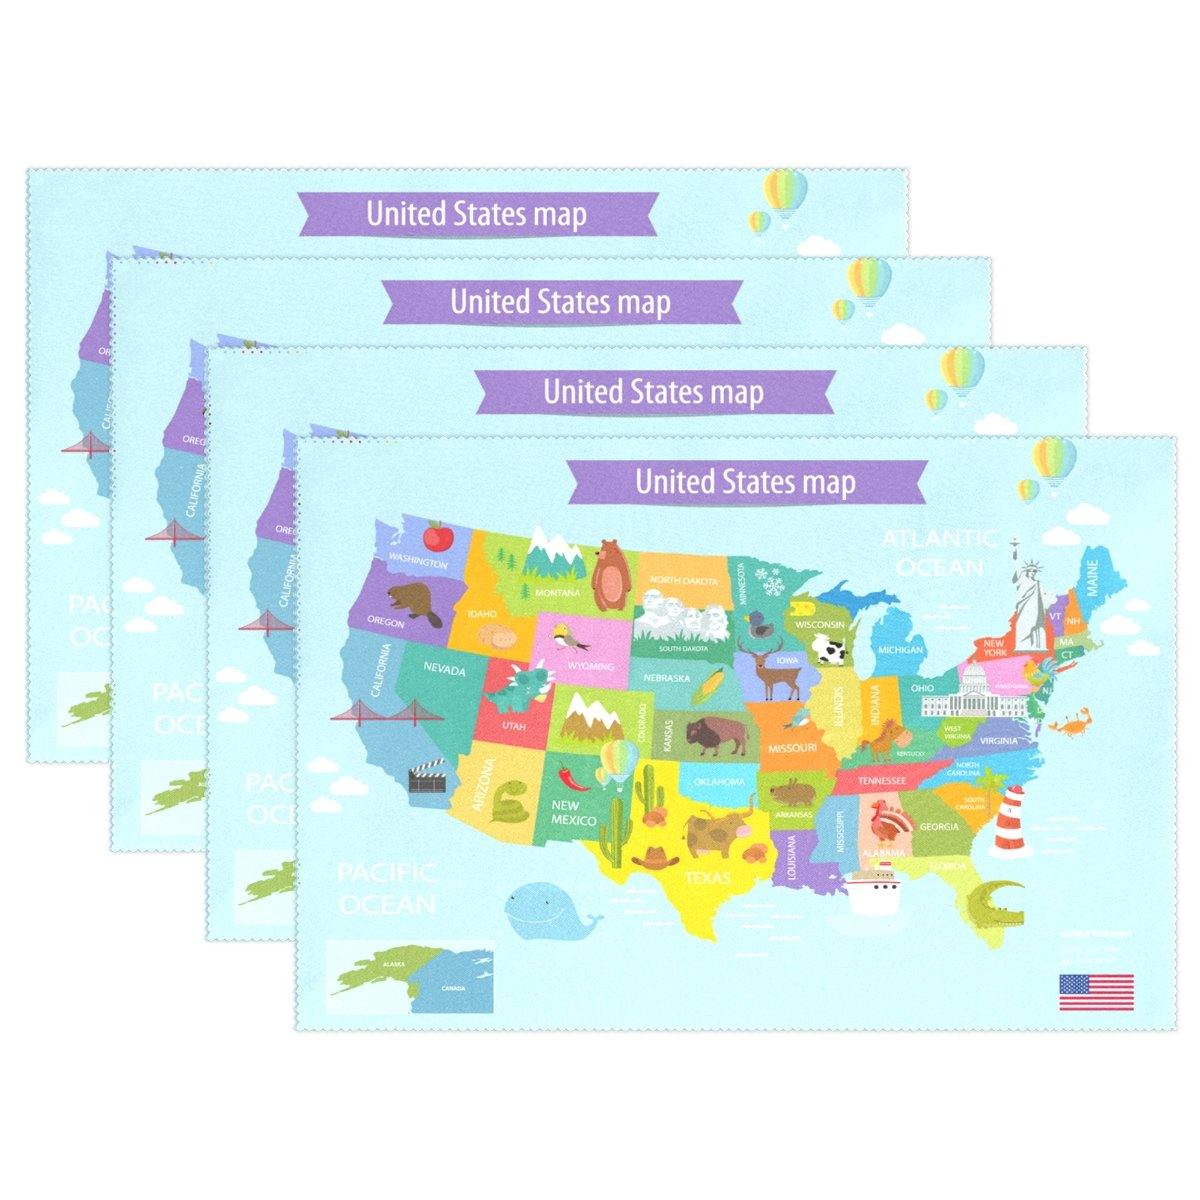 6pcs Map Of America Placemat - 12x18in - Washable Heat Crease Resistant Printed Place Mat for Kitchen Dinner Table by Top Carpenter